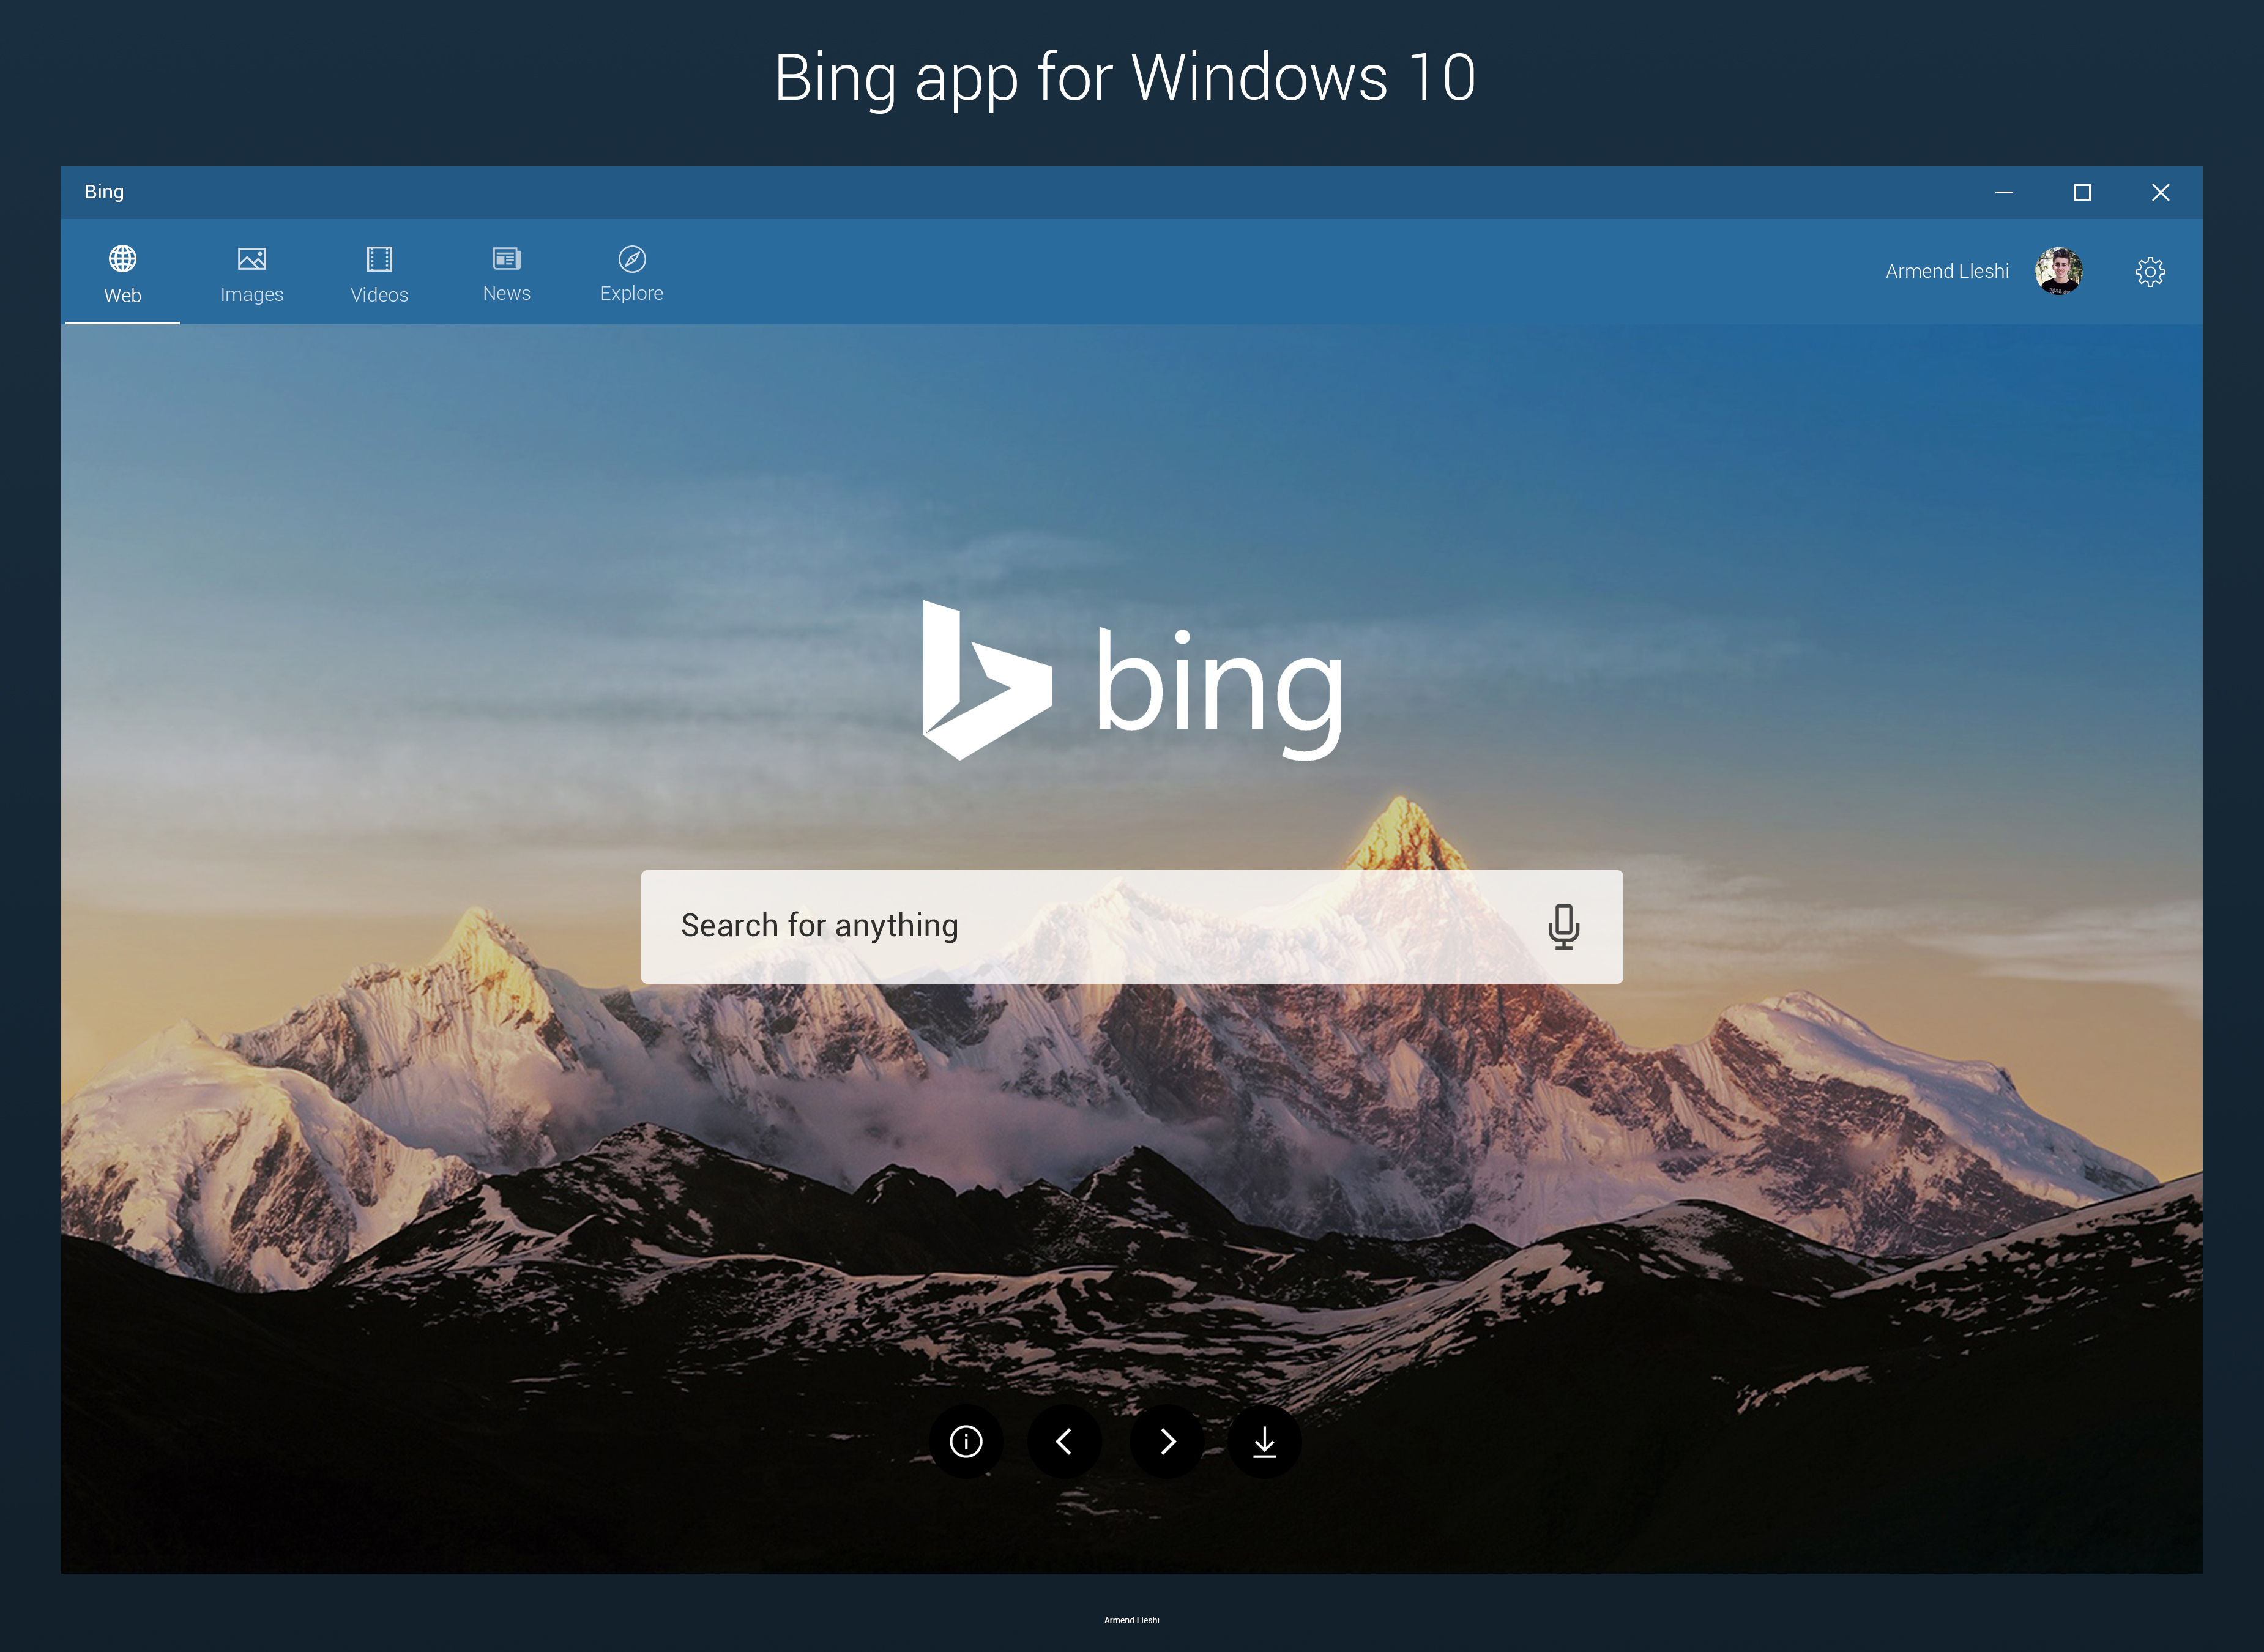 Bing app for Windows 10 - Concept by armend07 on DeviantArt